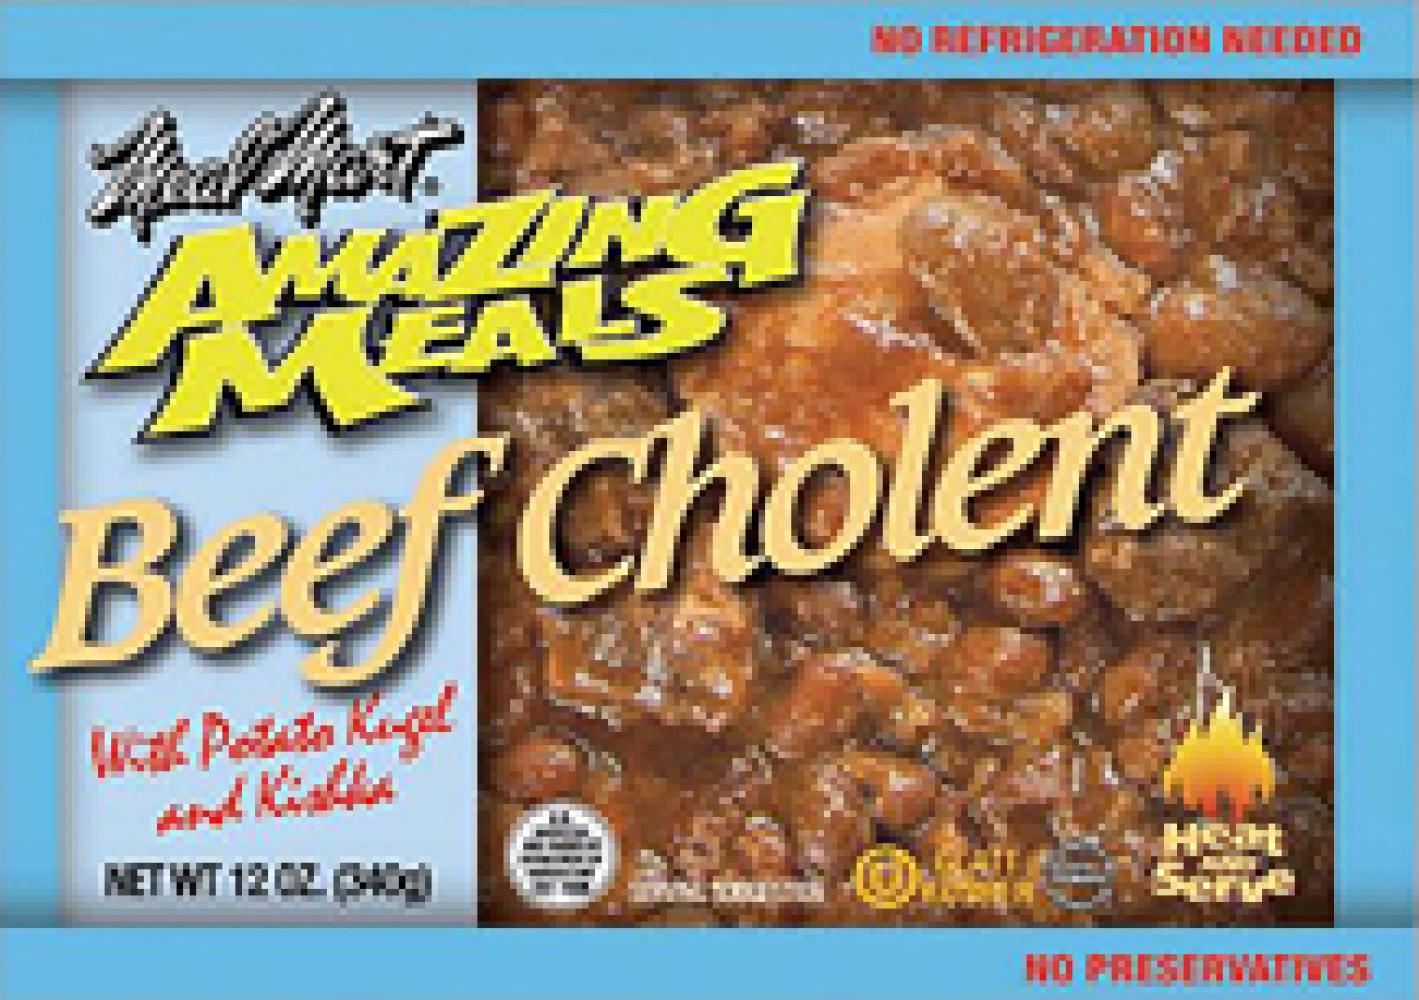 Meal Mart Amazing Meals Beef Cholent with Potato Kugel and Kishka 12 oz